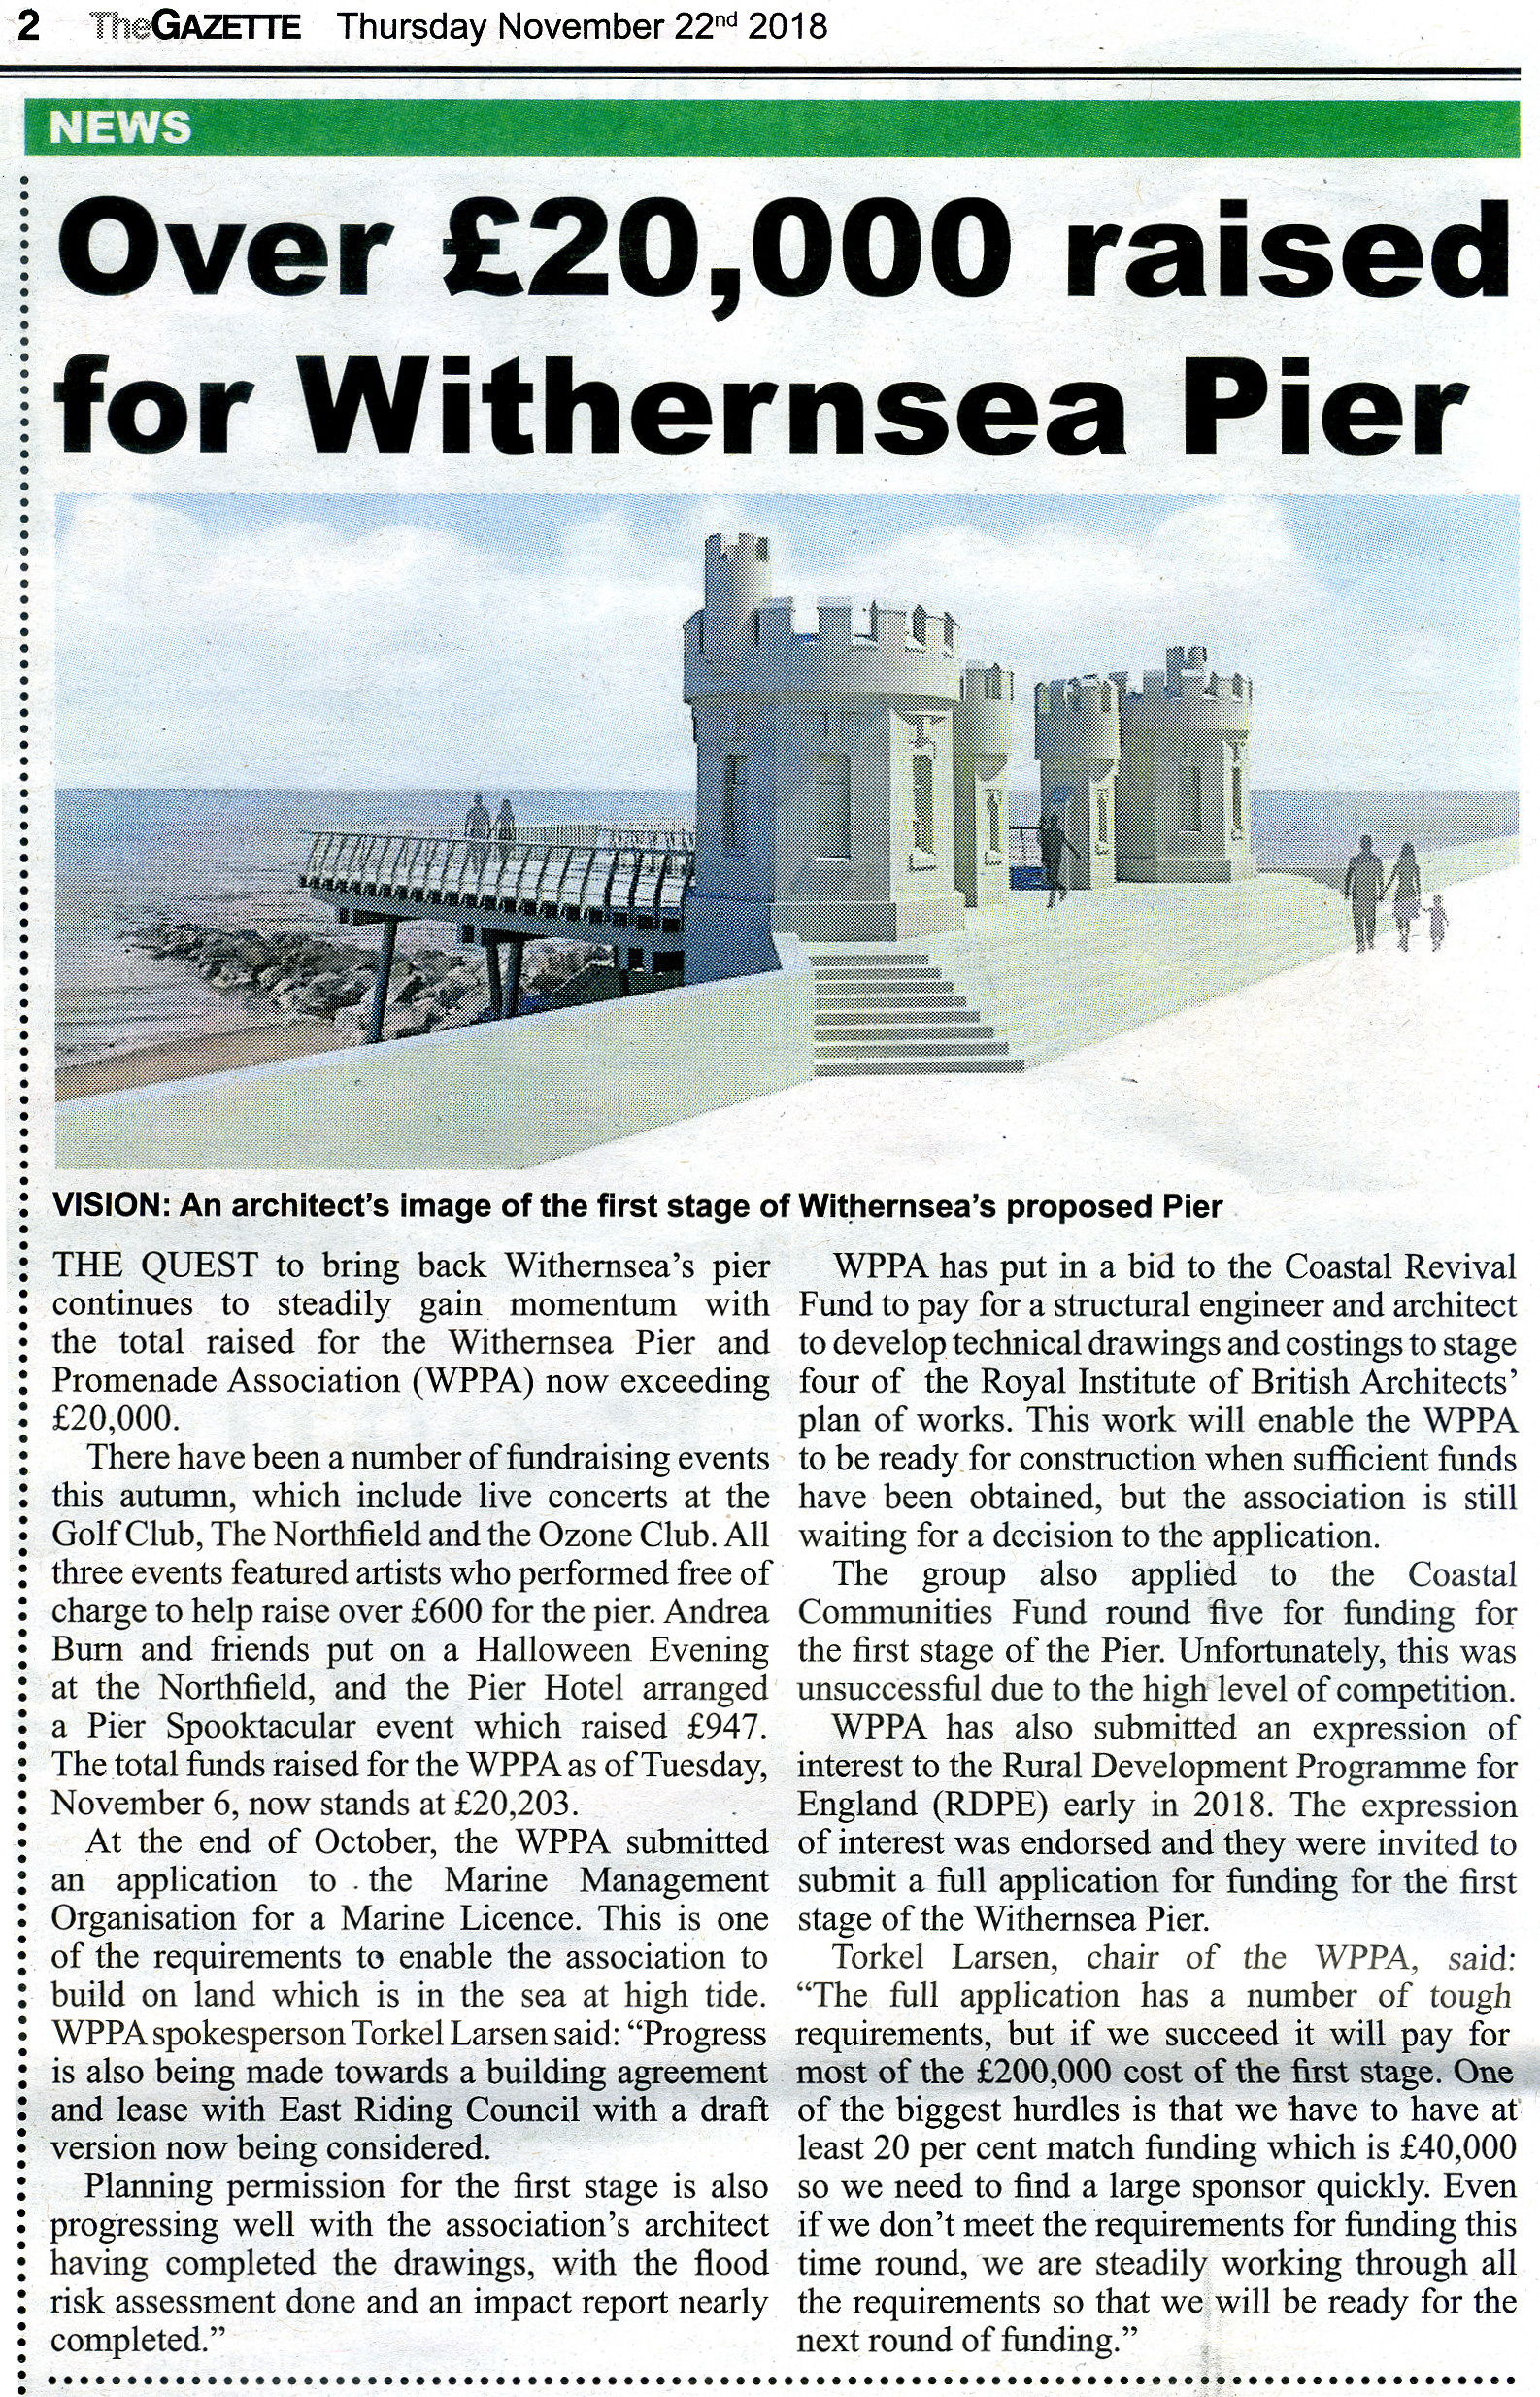 Withernsea Pier Article in Gazette